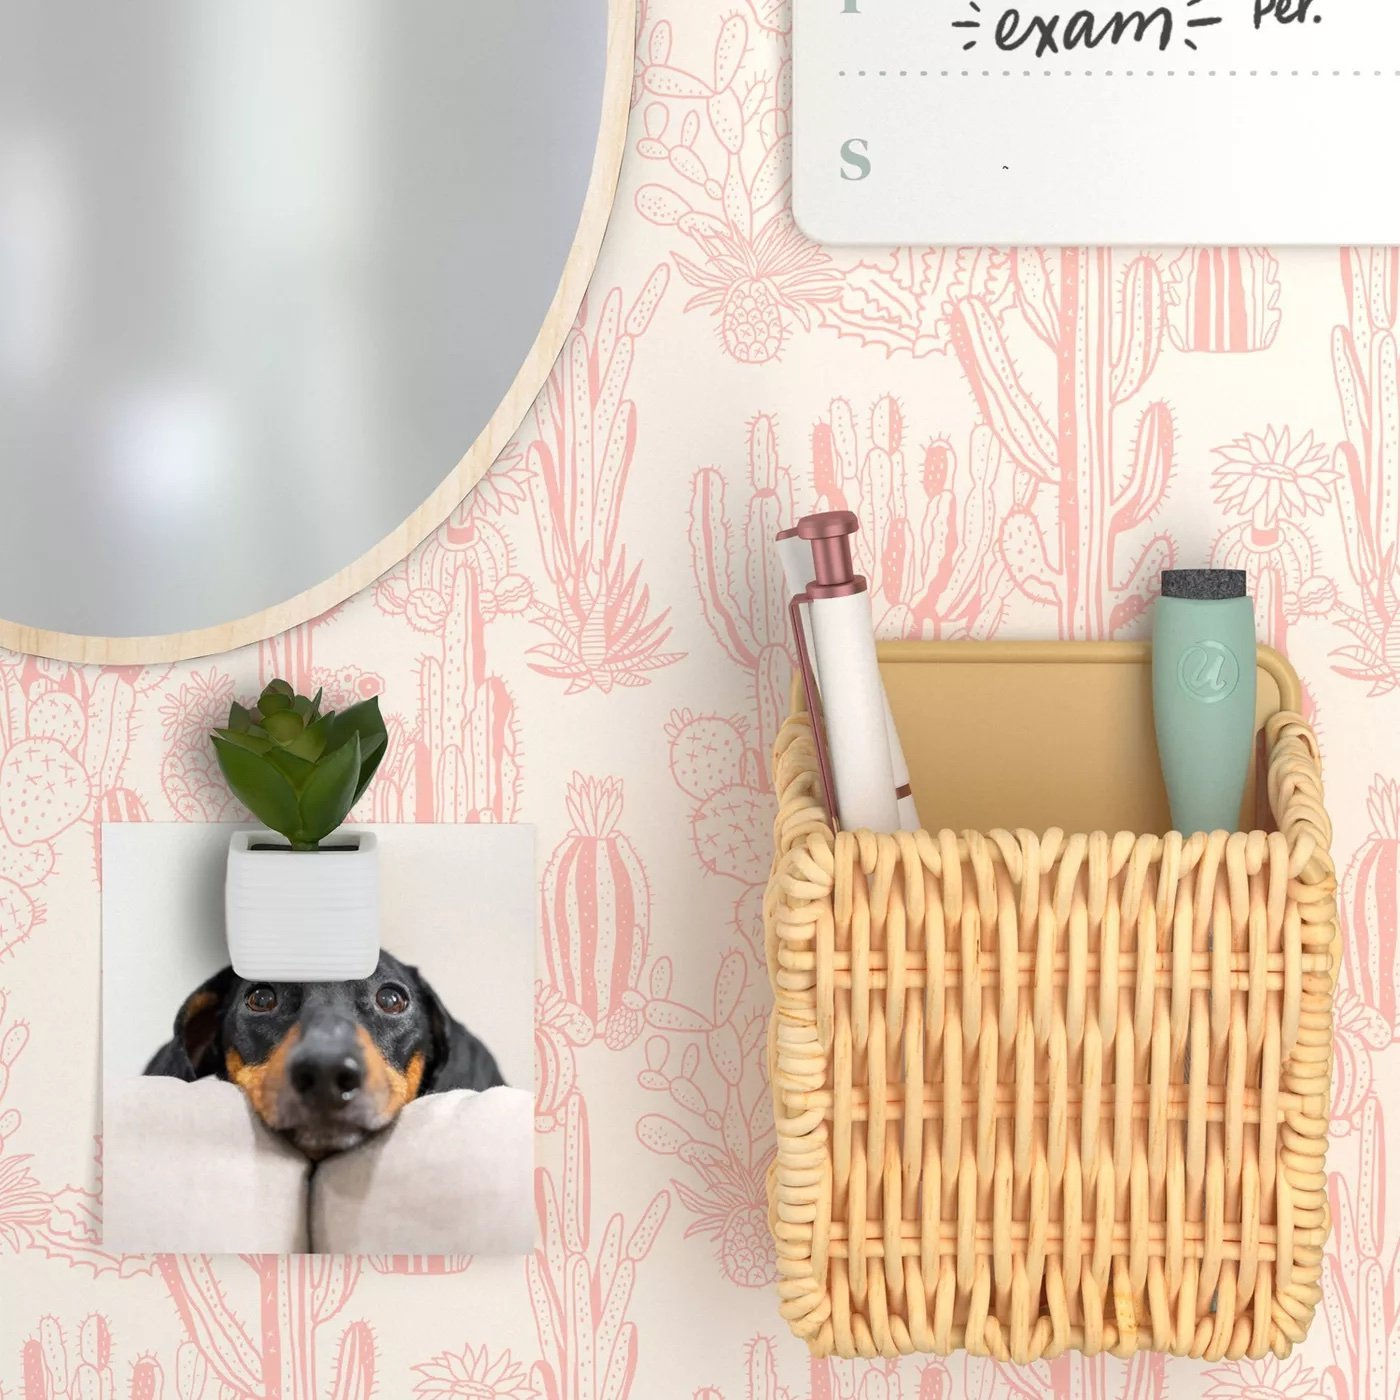 Locker Boho Chic Kit With Woven Cup